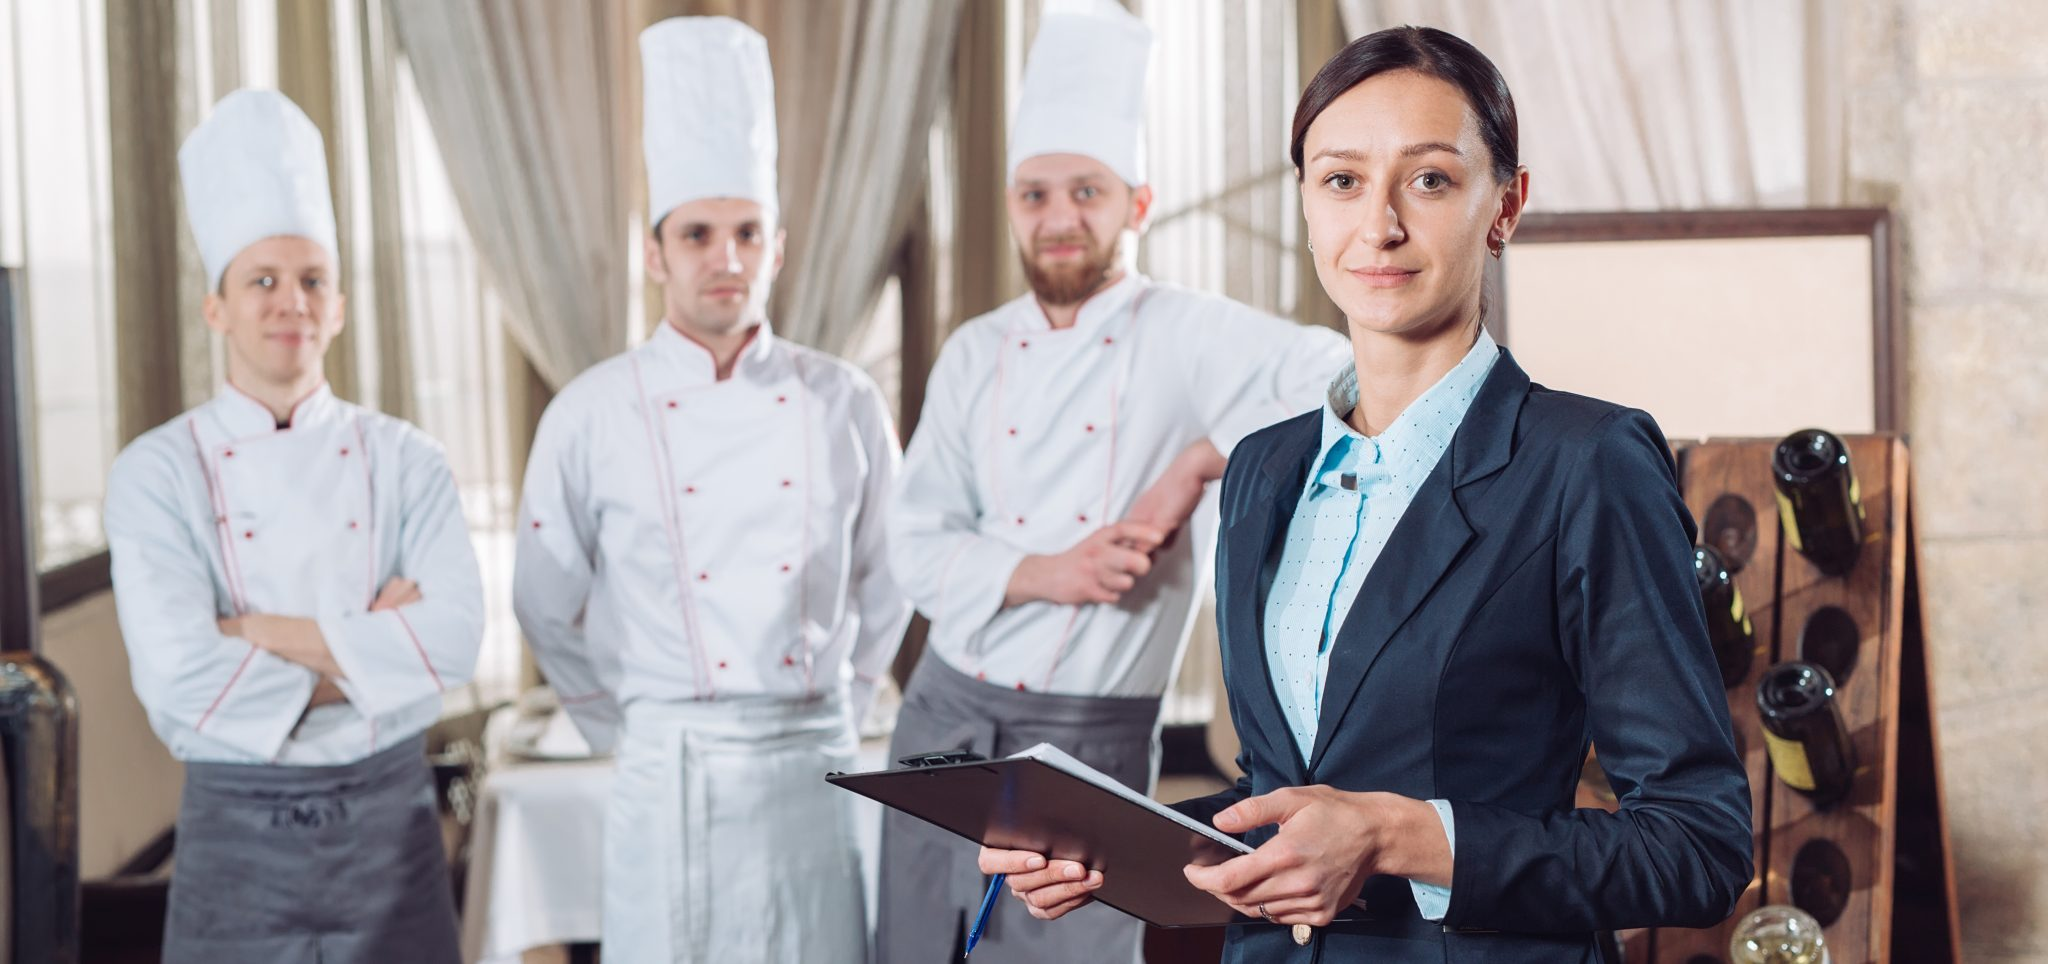 5 Tips for a Successful Department of Health Inspection